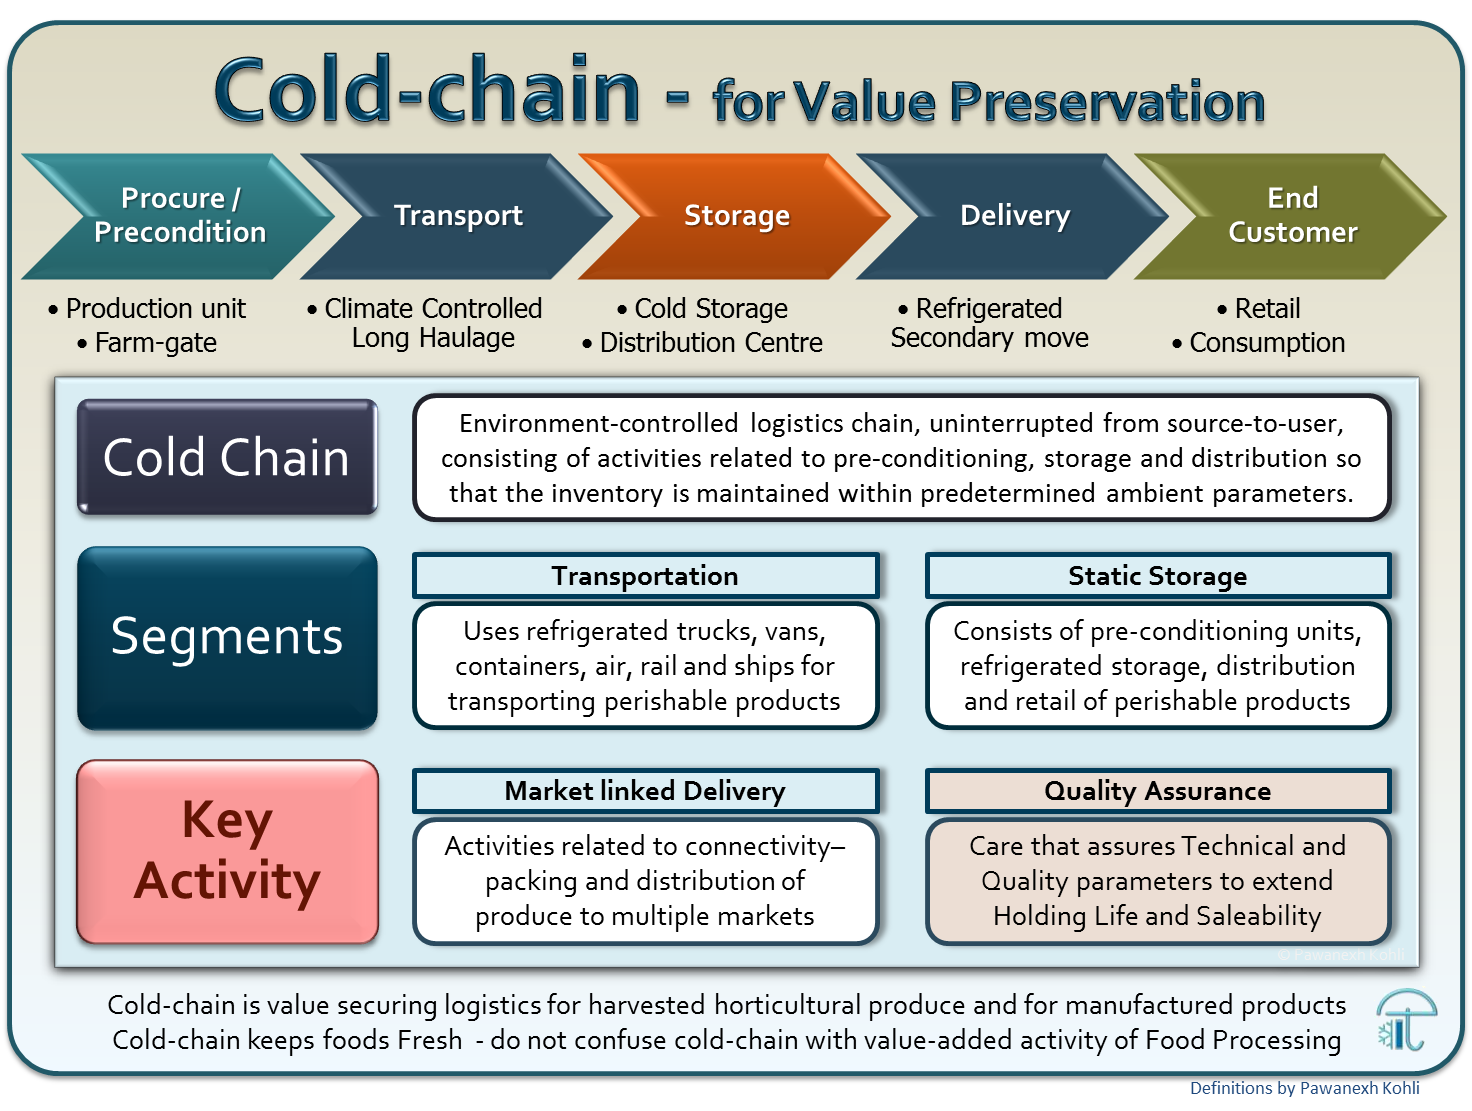 Definition Cold-chain - Pawanexh Kohli